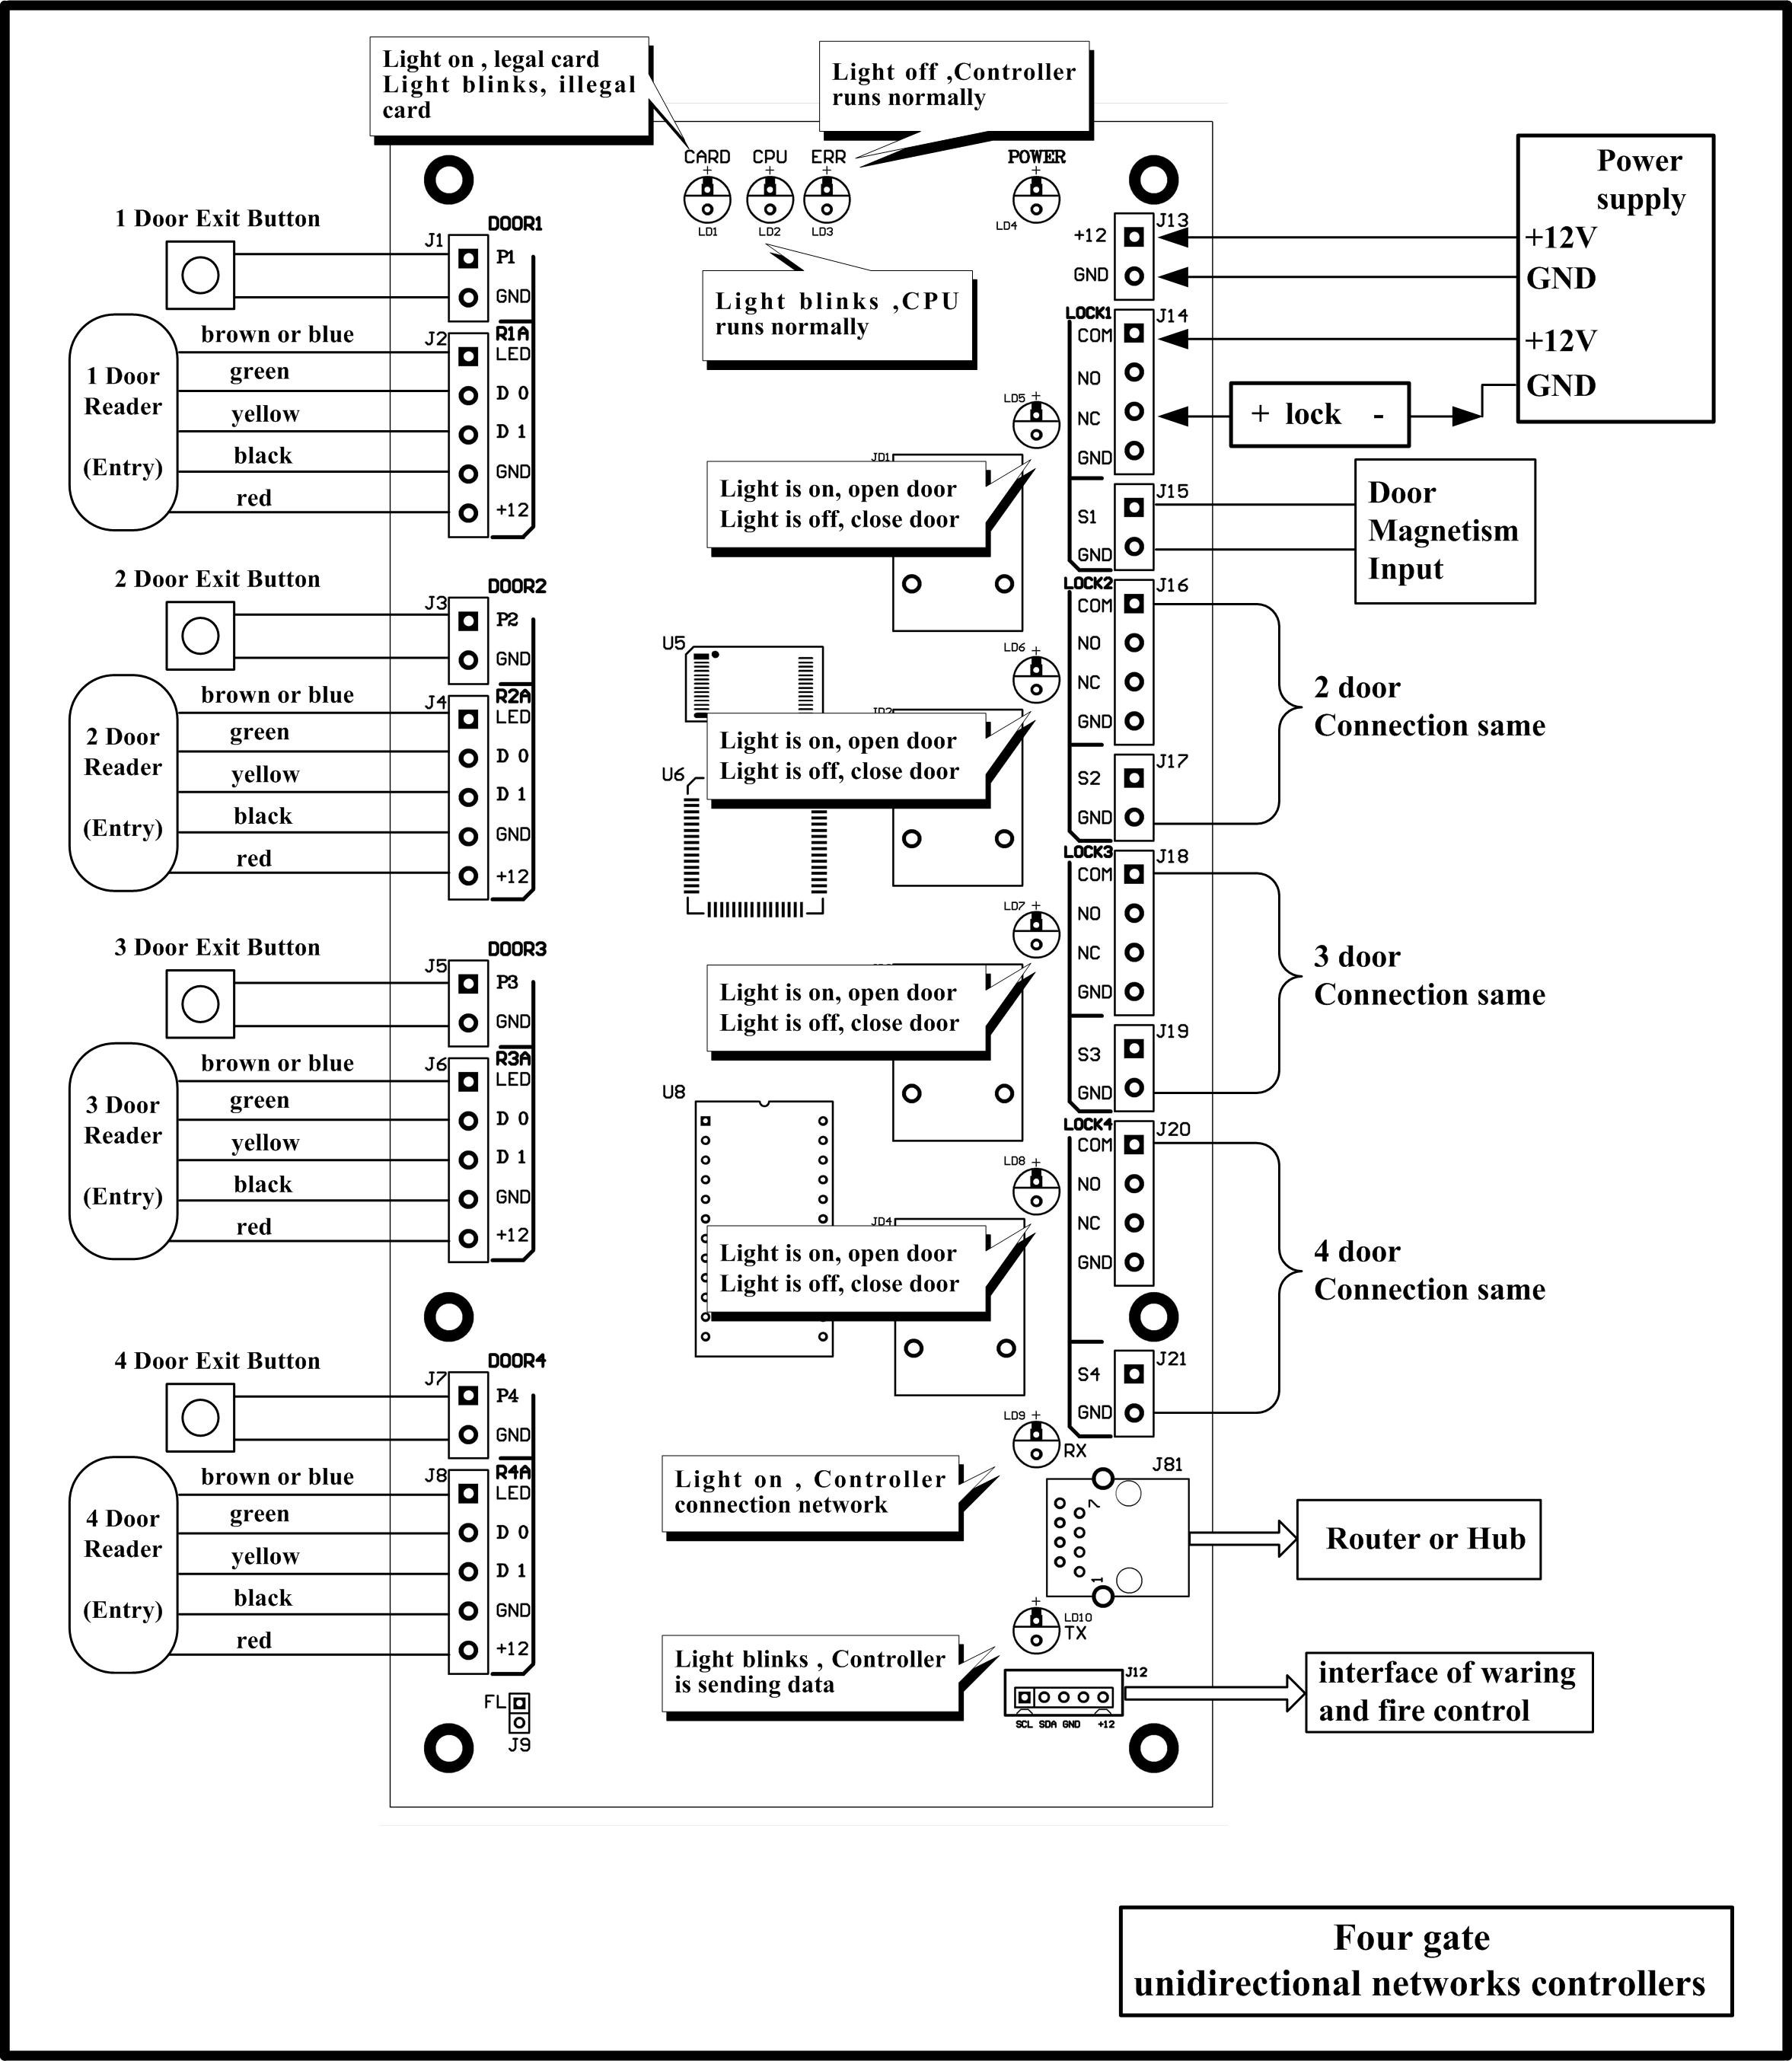 Hid Card Reader Wiring Diagram My King Gate Keypad Prox Proximity For Sample Tutorial Dimension Full